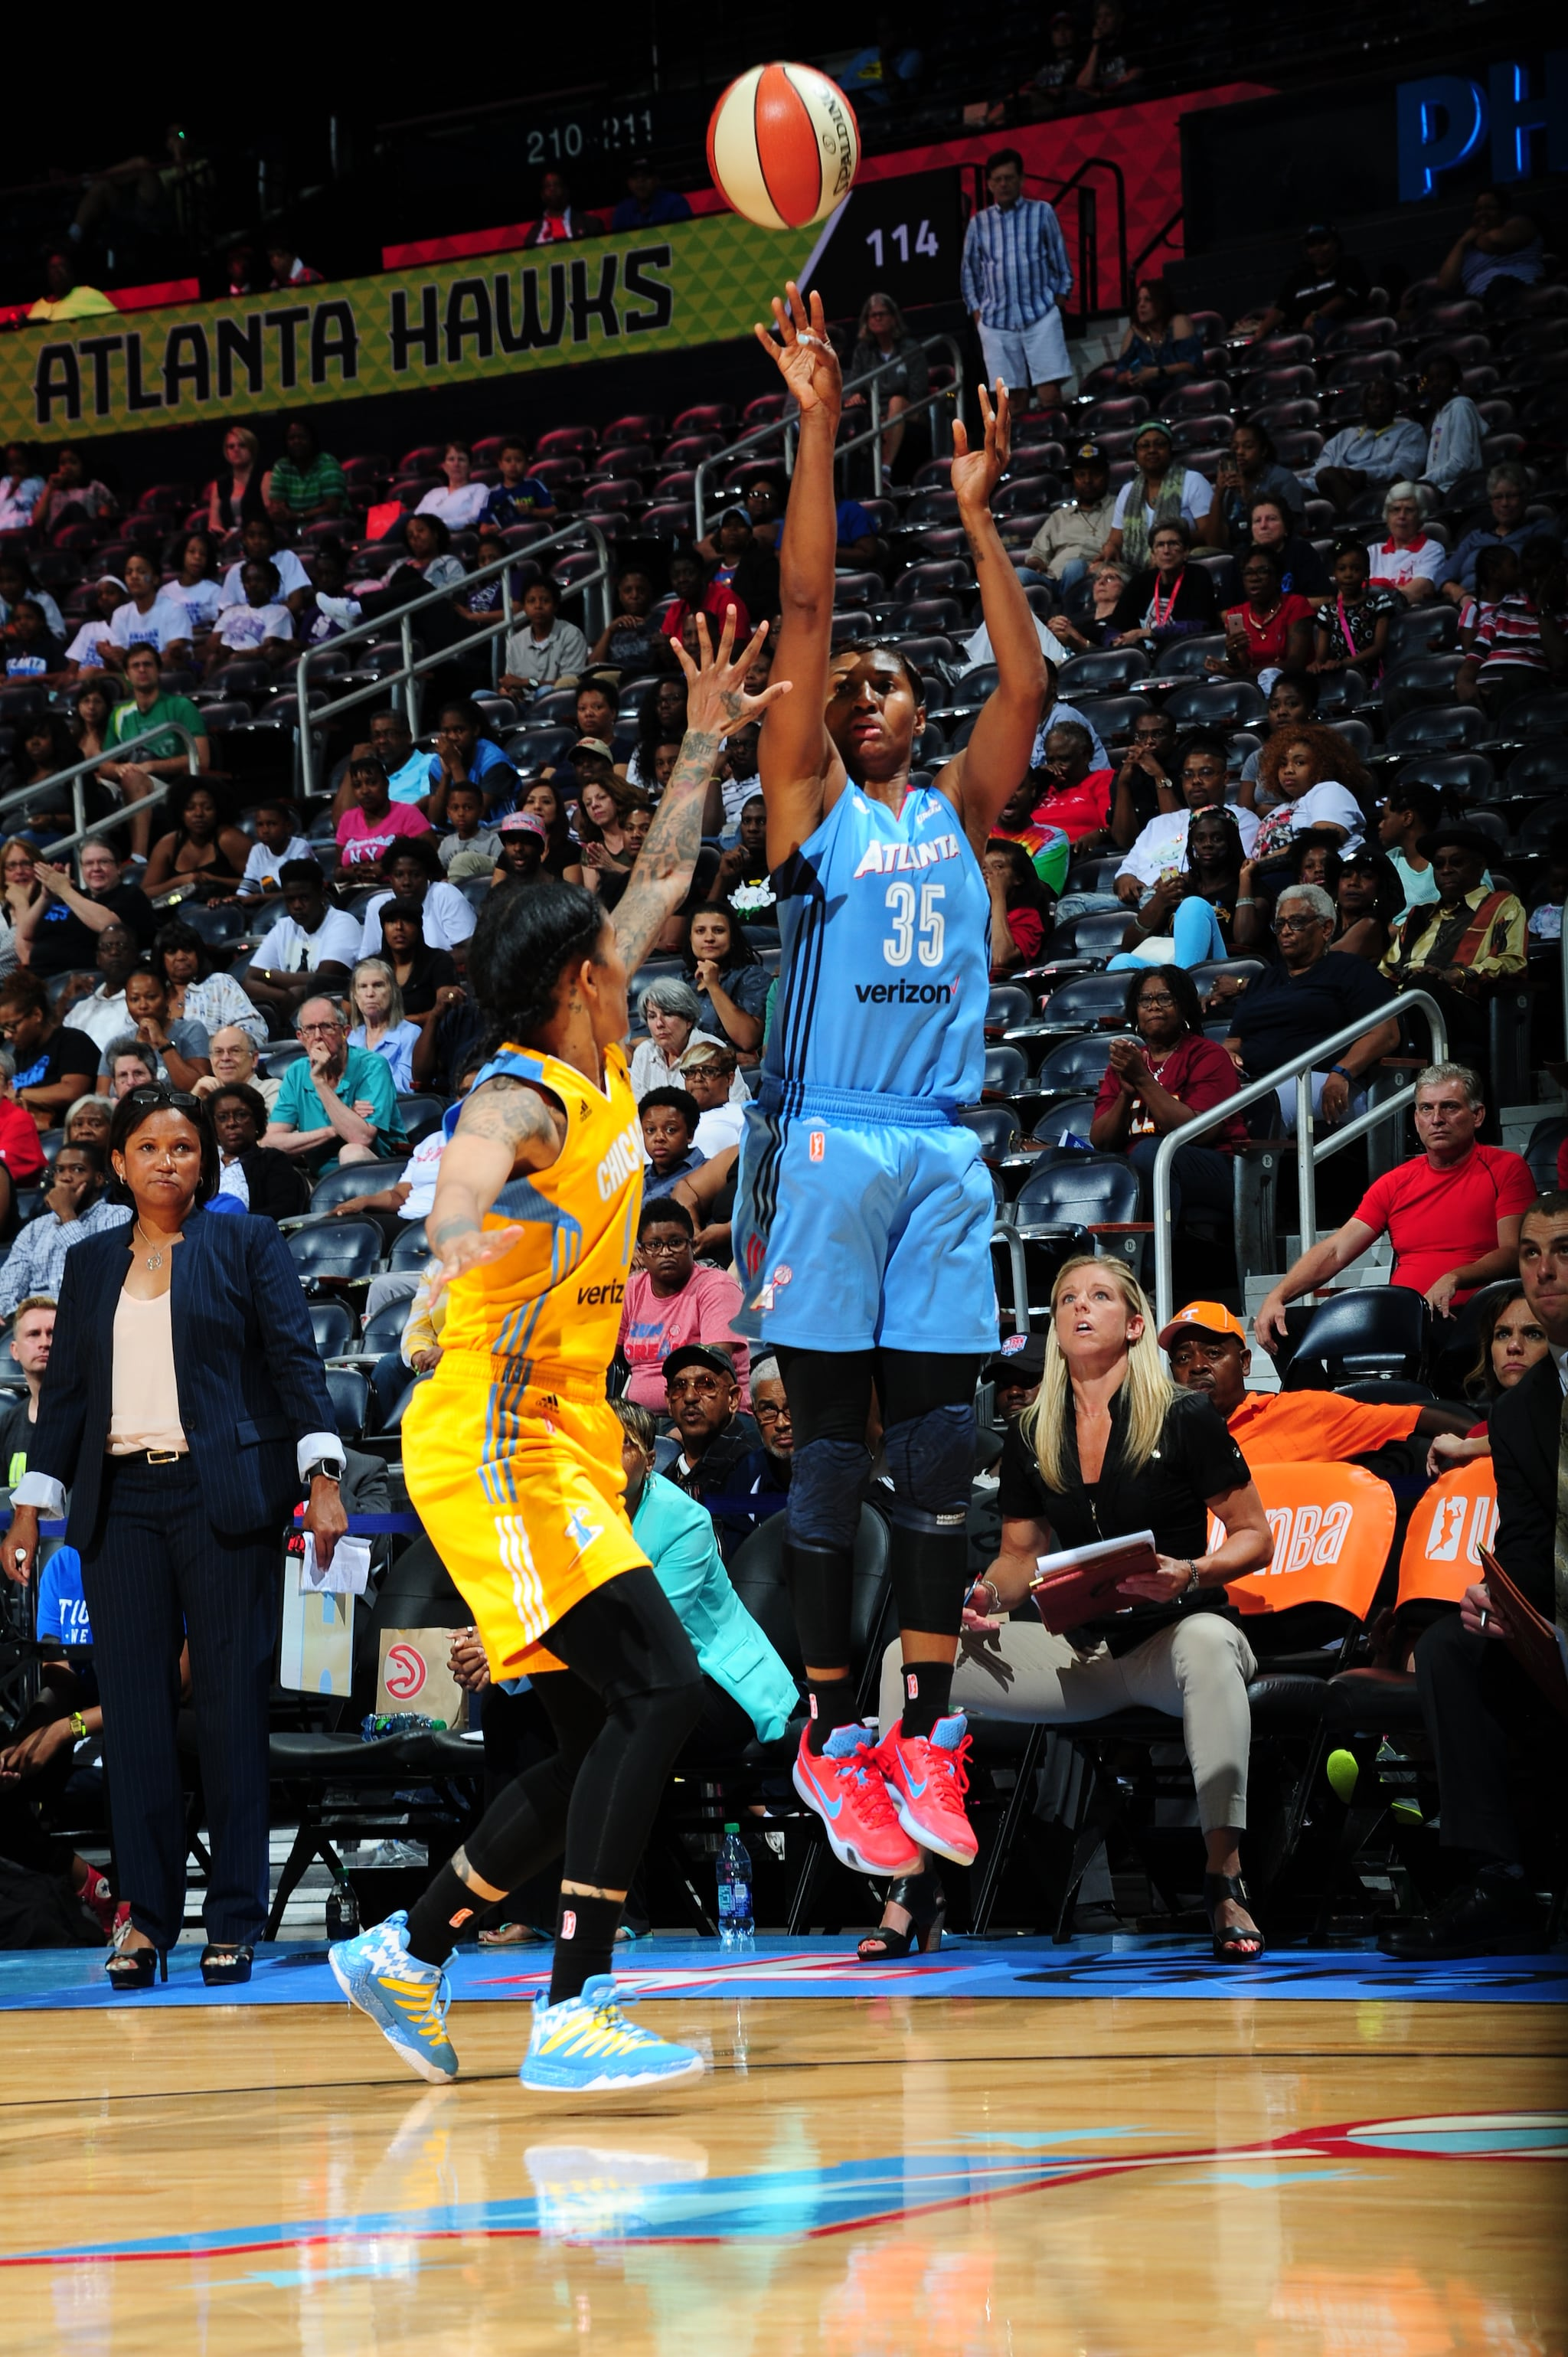 ATLANTA, GA - JUNE 17: Angel McCoughtry #35 of the Atlanta Dream shoots against the Chicago Sky on June 17, 2016 at Philips Arena in Atlanta, Georgia. NOTE TO USER: User expressly acknowledges and agrees that, by downloading and/or using this Photograph, user is consenting to the terms and conditions of the Getty Images License Agreement. Mandatory Copyright Notice: Copyright 2016 NBAE (Photo by Scott Cunningham/NBAE via Getty Images)